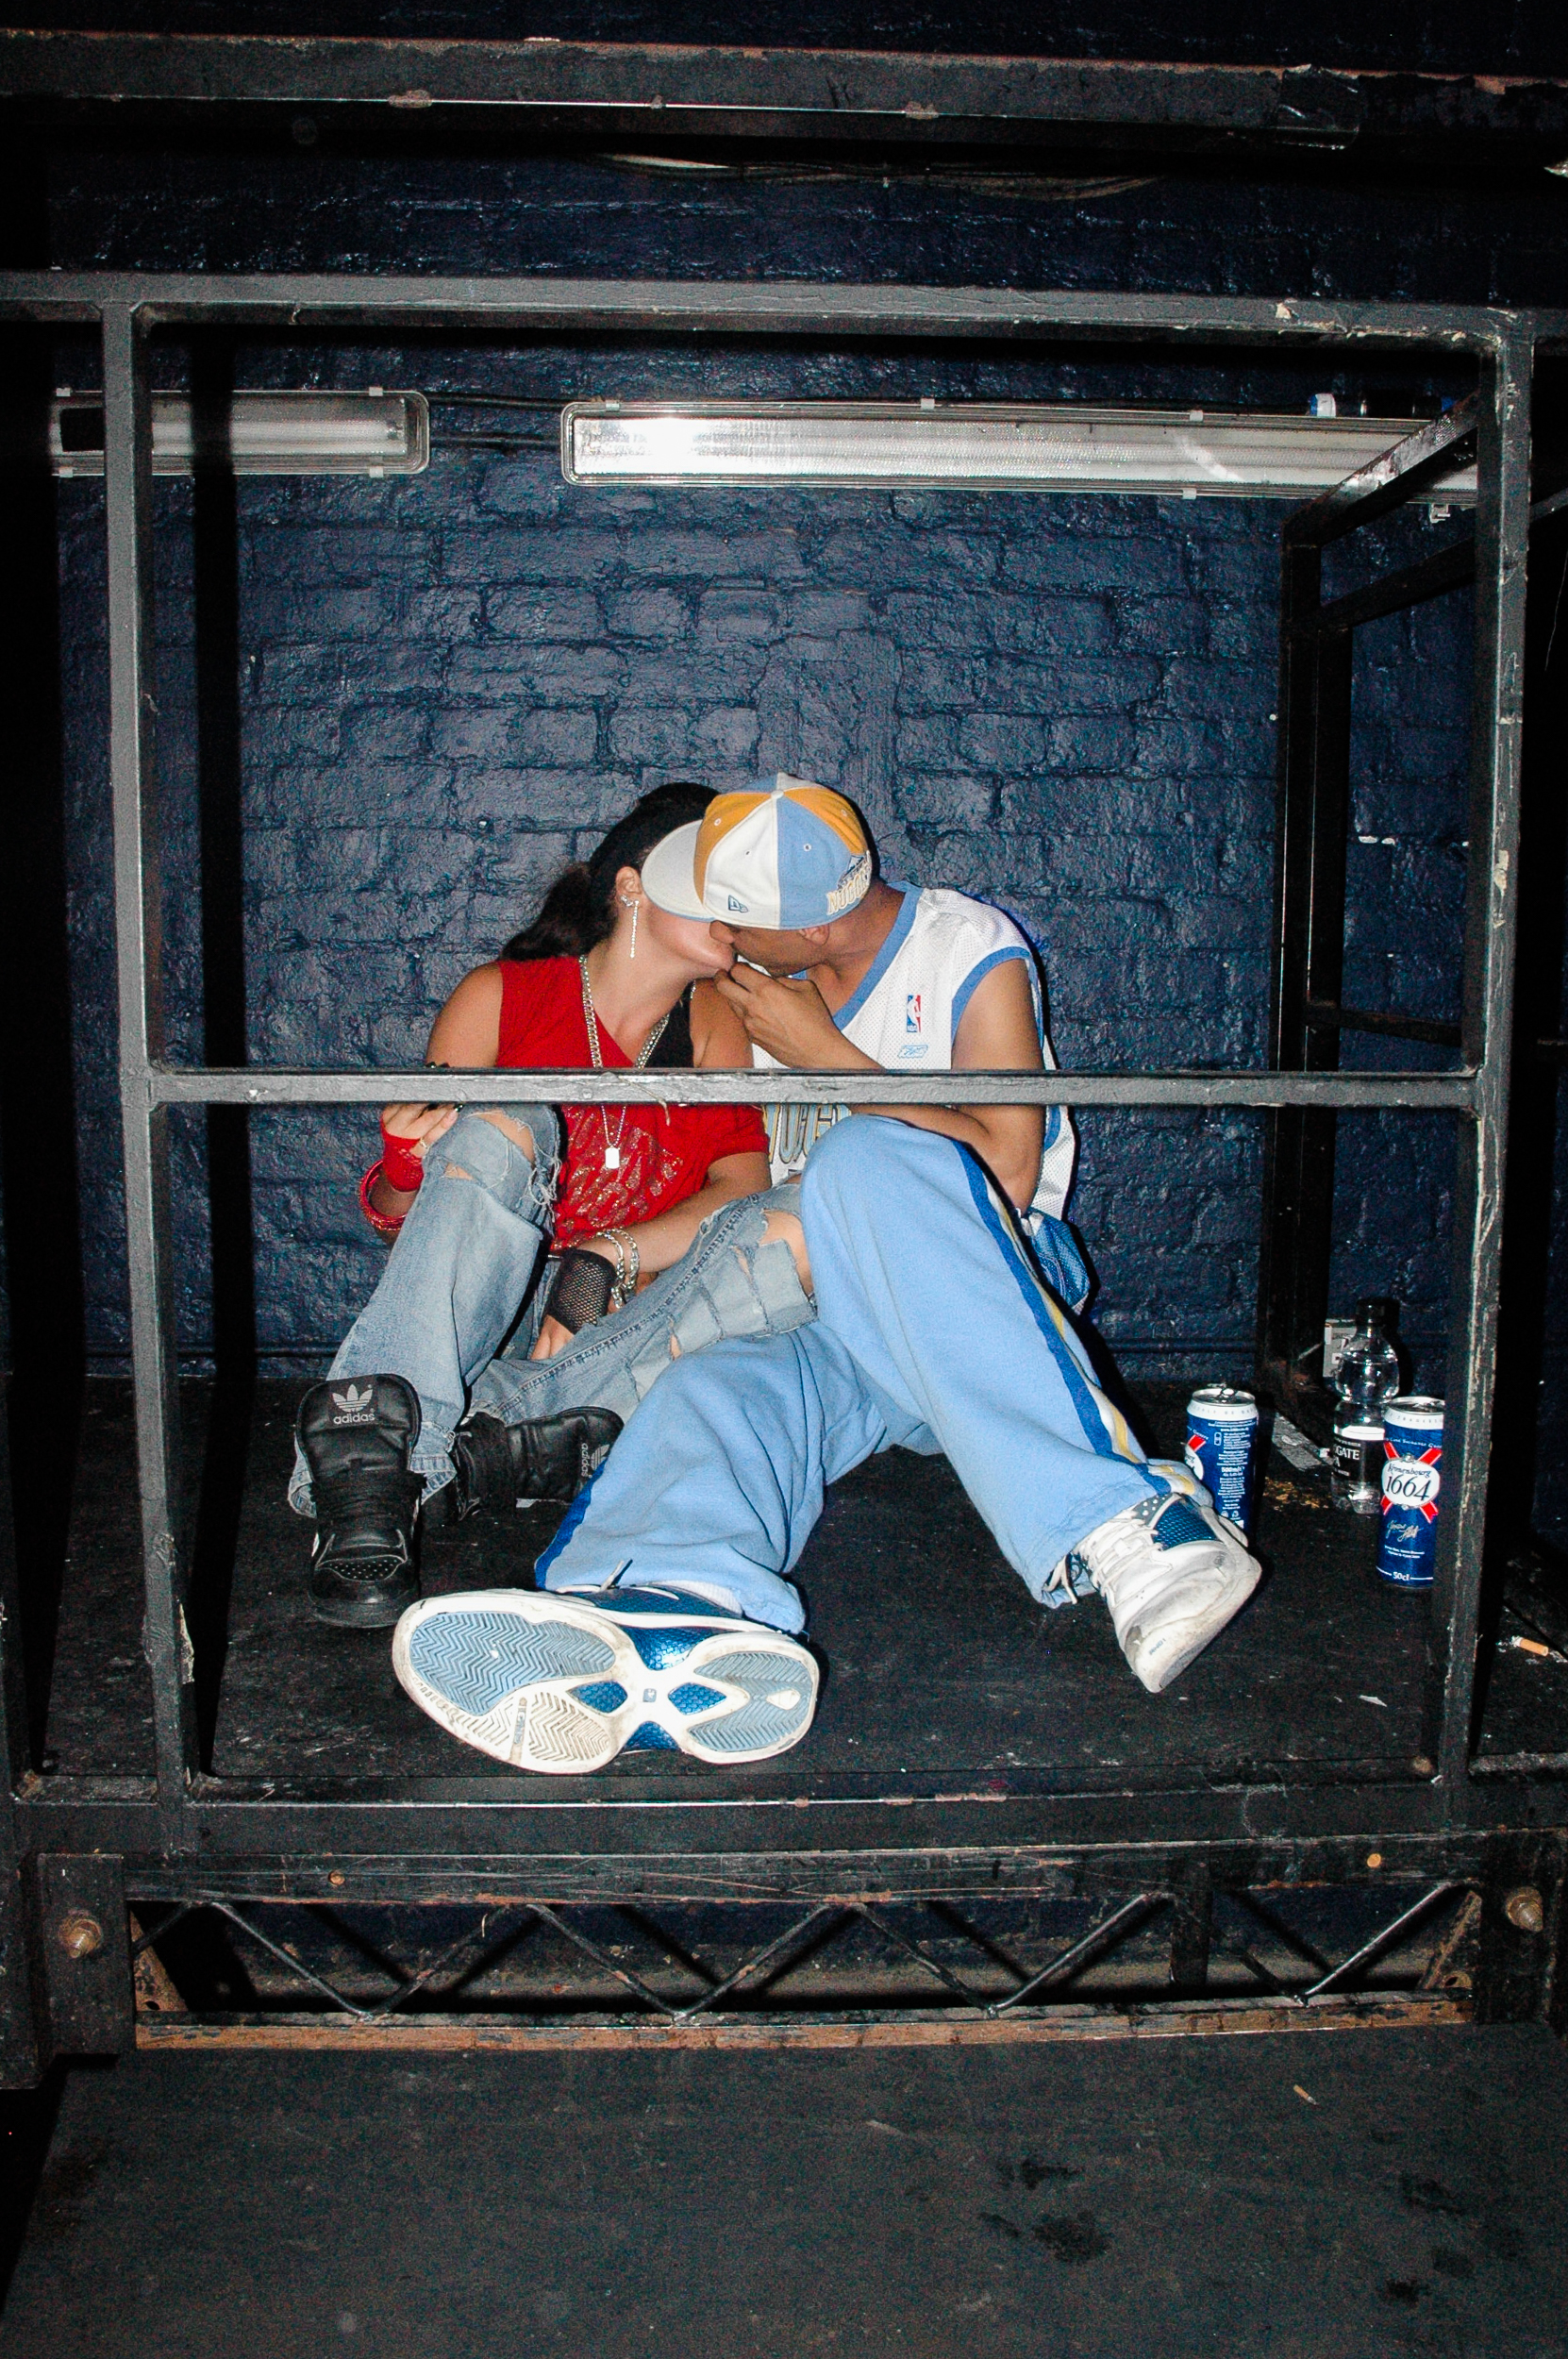 Kissing Ravers, Hysteria event in Vauxhall, 2005. By Georgina Cook